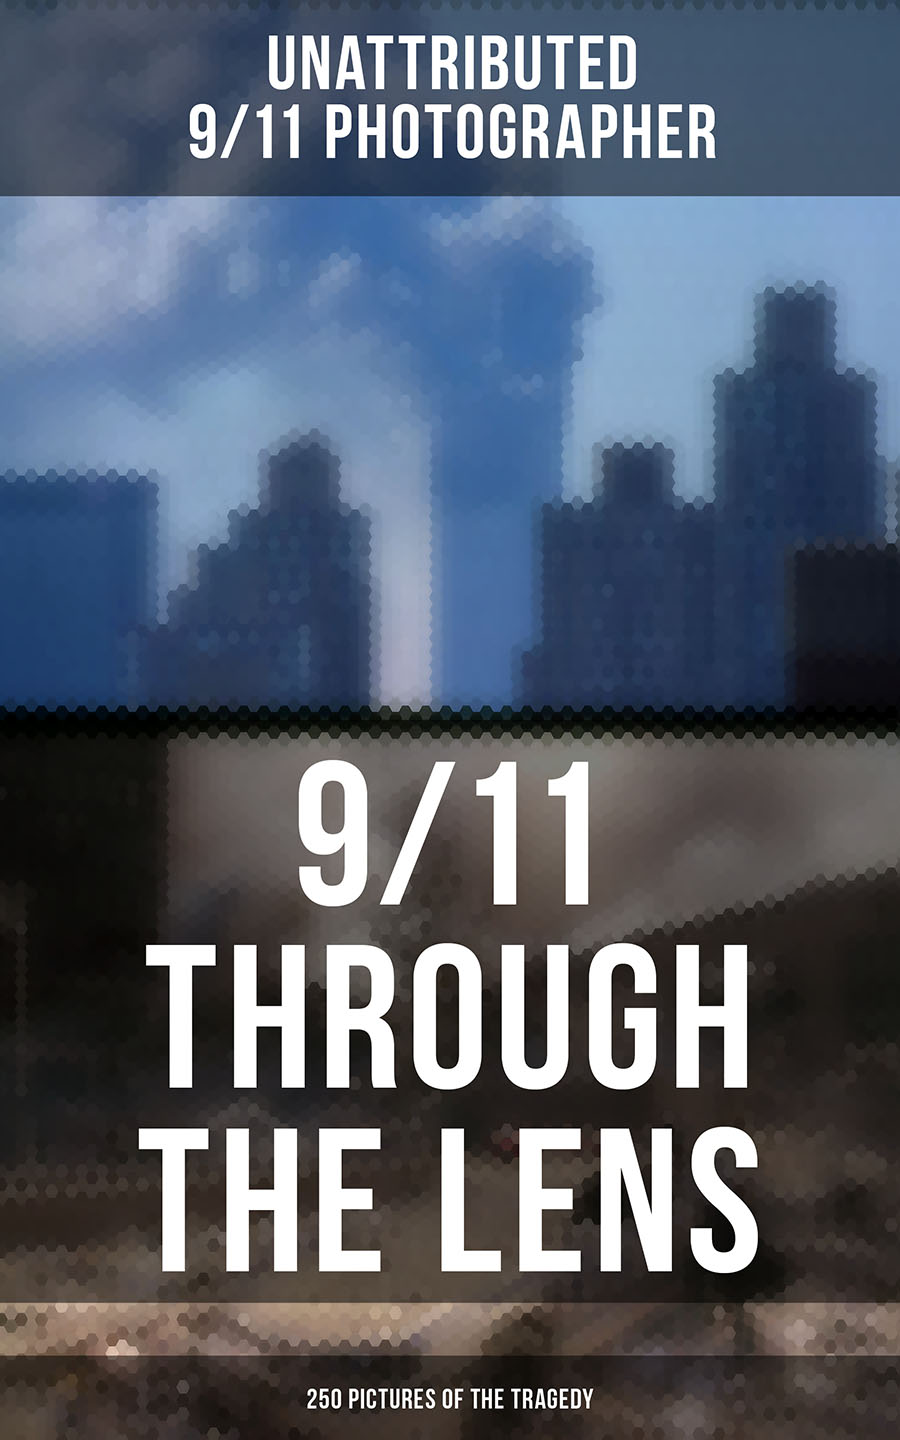 Unattributed 9/11 Photographer 9/11 THROUGH THE LENS (250 Pictures of the Tragedy) seeing through race page 9